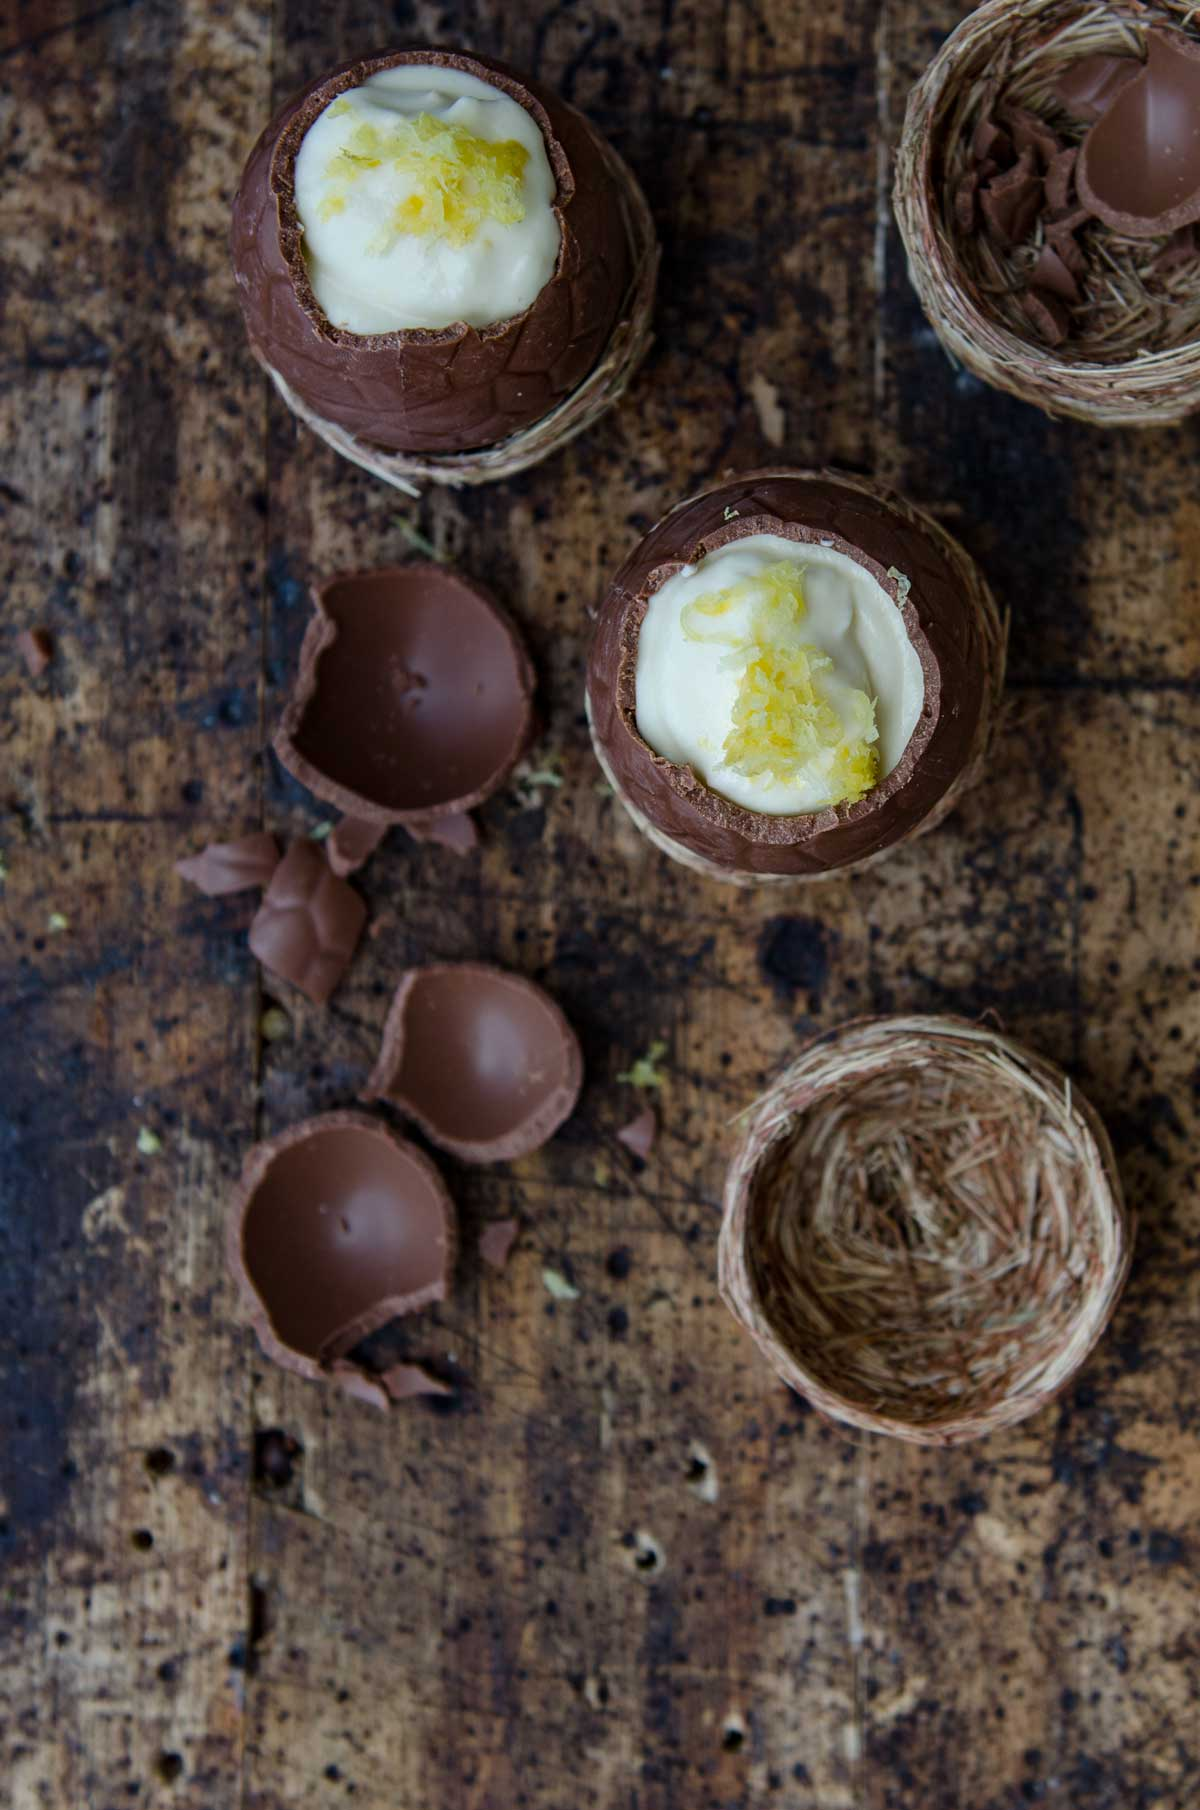 Lemon Mousse Filled Easter Eggs Recipe | Chew Town Food Blog